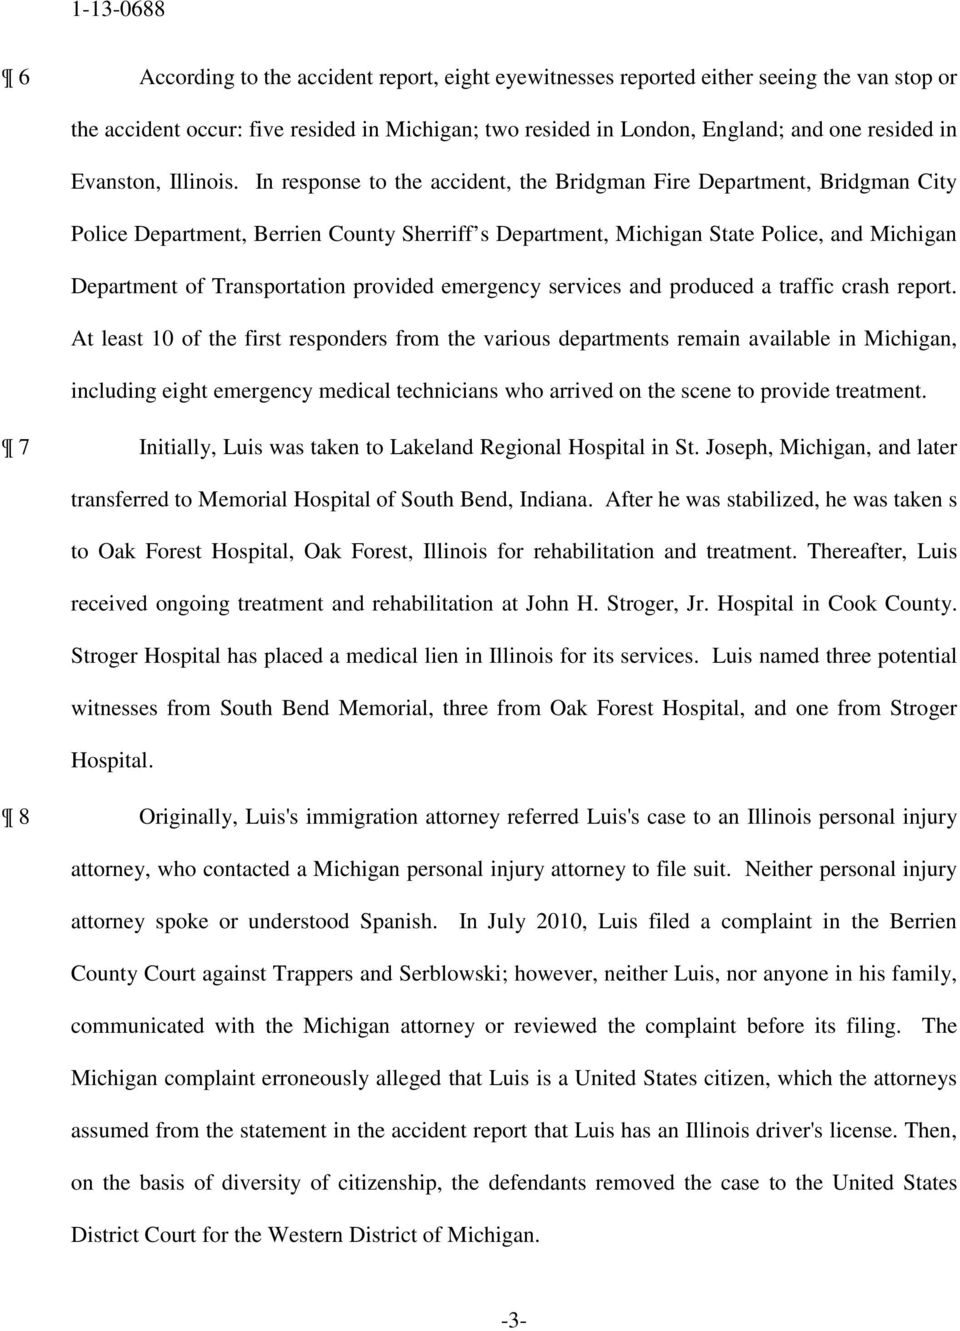 In response to the accident, the Bridgman Fire Department, Bridgman City Police Department, Berrien County Sherriff s Department, Michigan State Police, and Michigan Department of Transportation